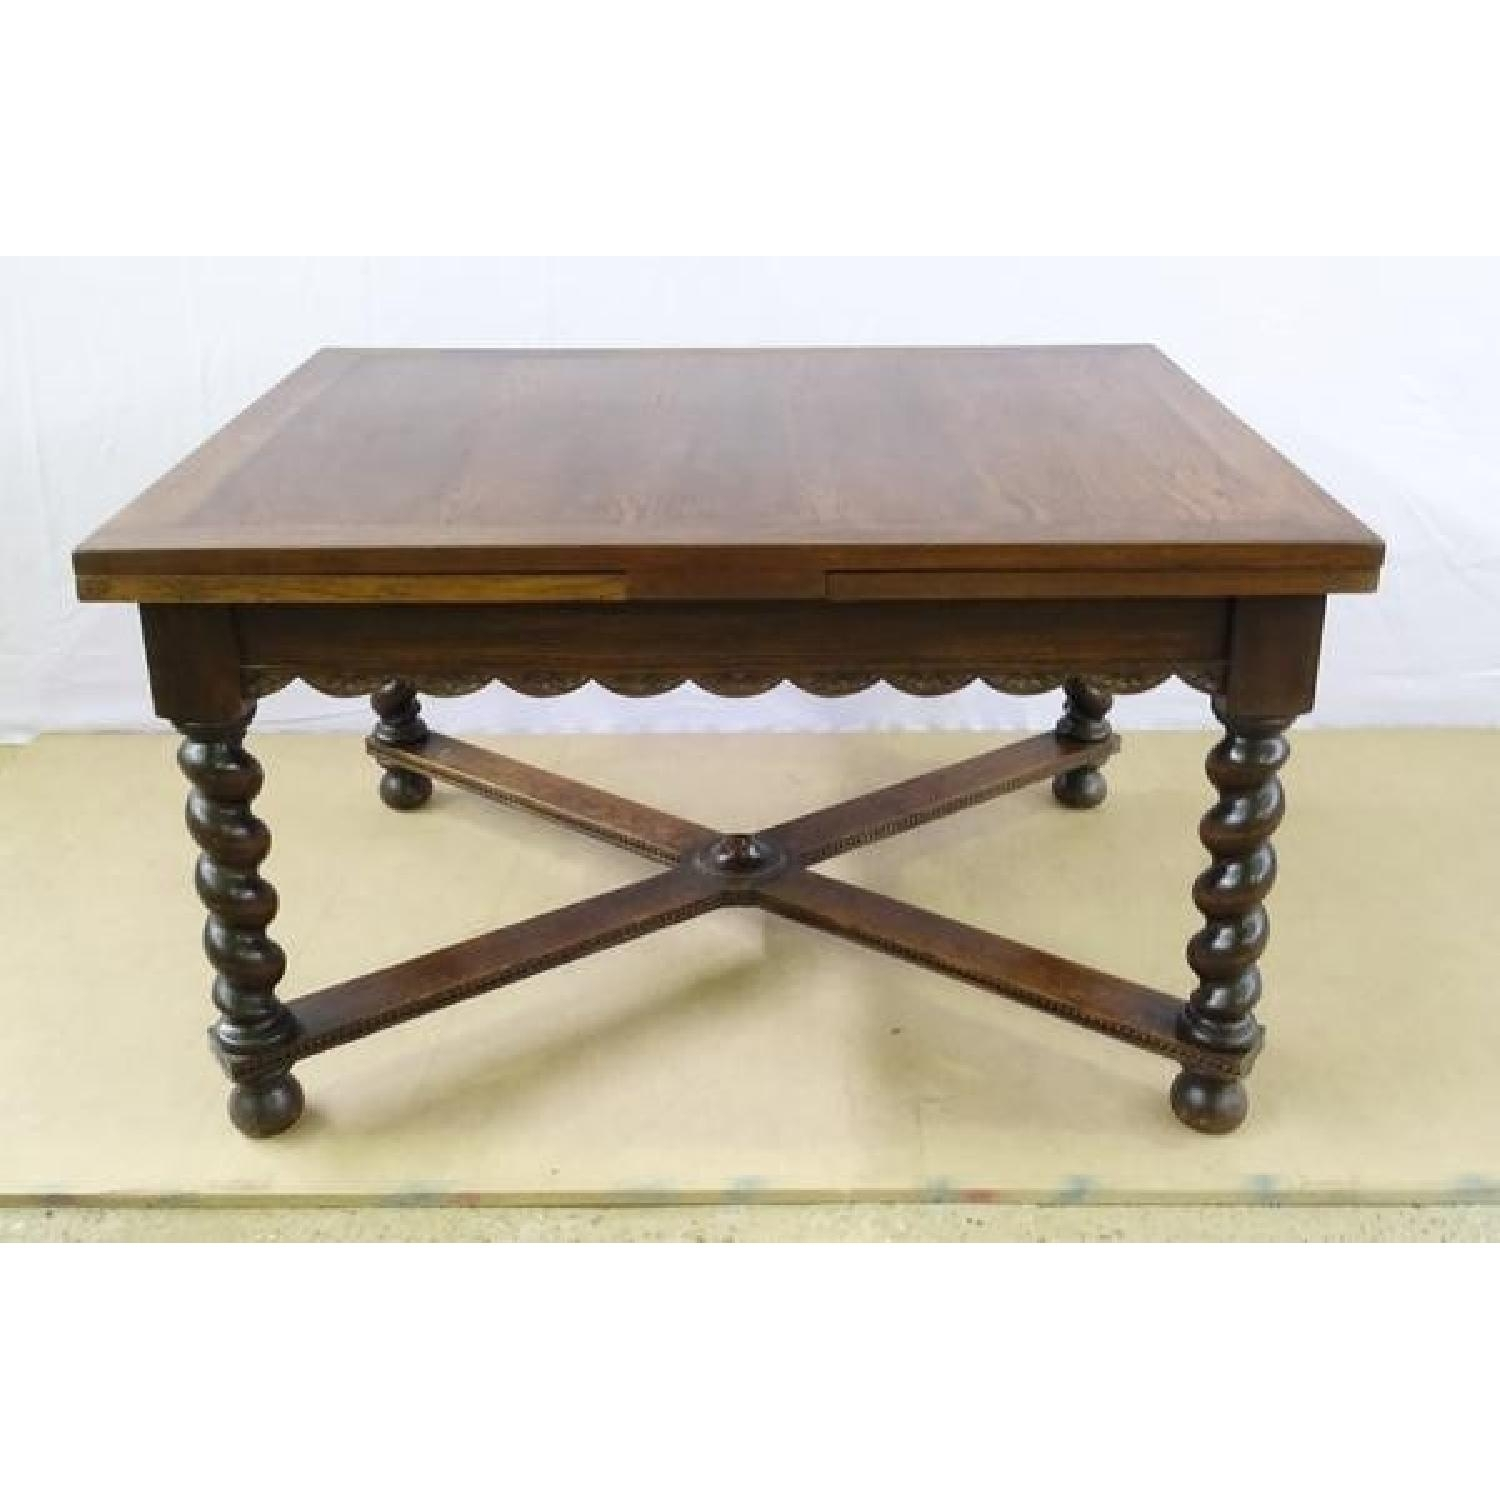 Antique French Extending Barley Twist Oak Dining Table - Aptdeco with Barley Twist Coffee Tables (Image 4 of 30)